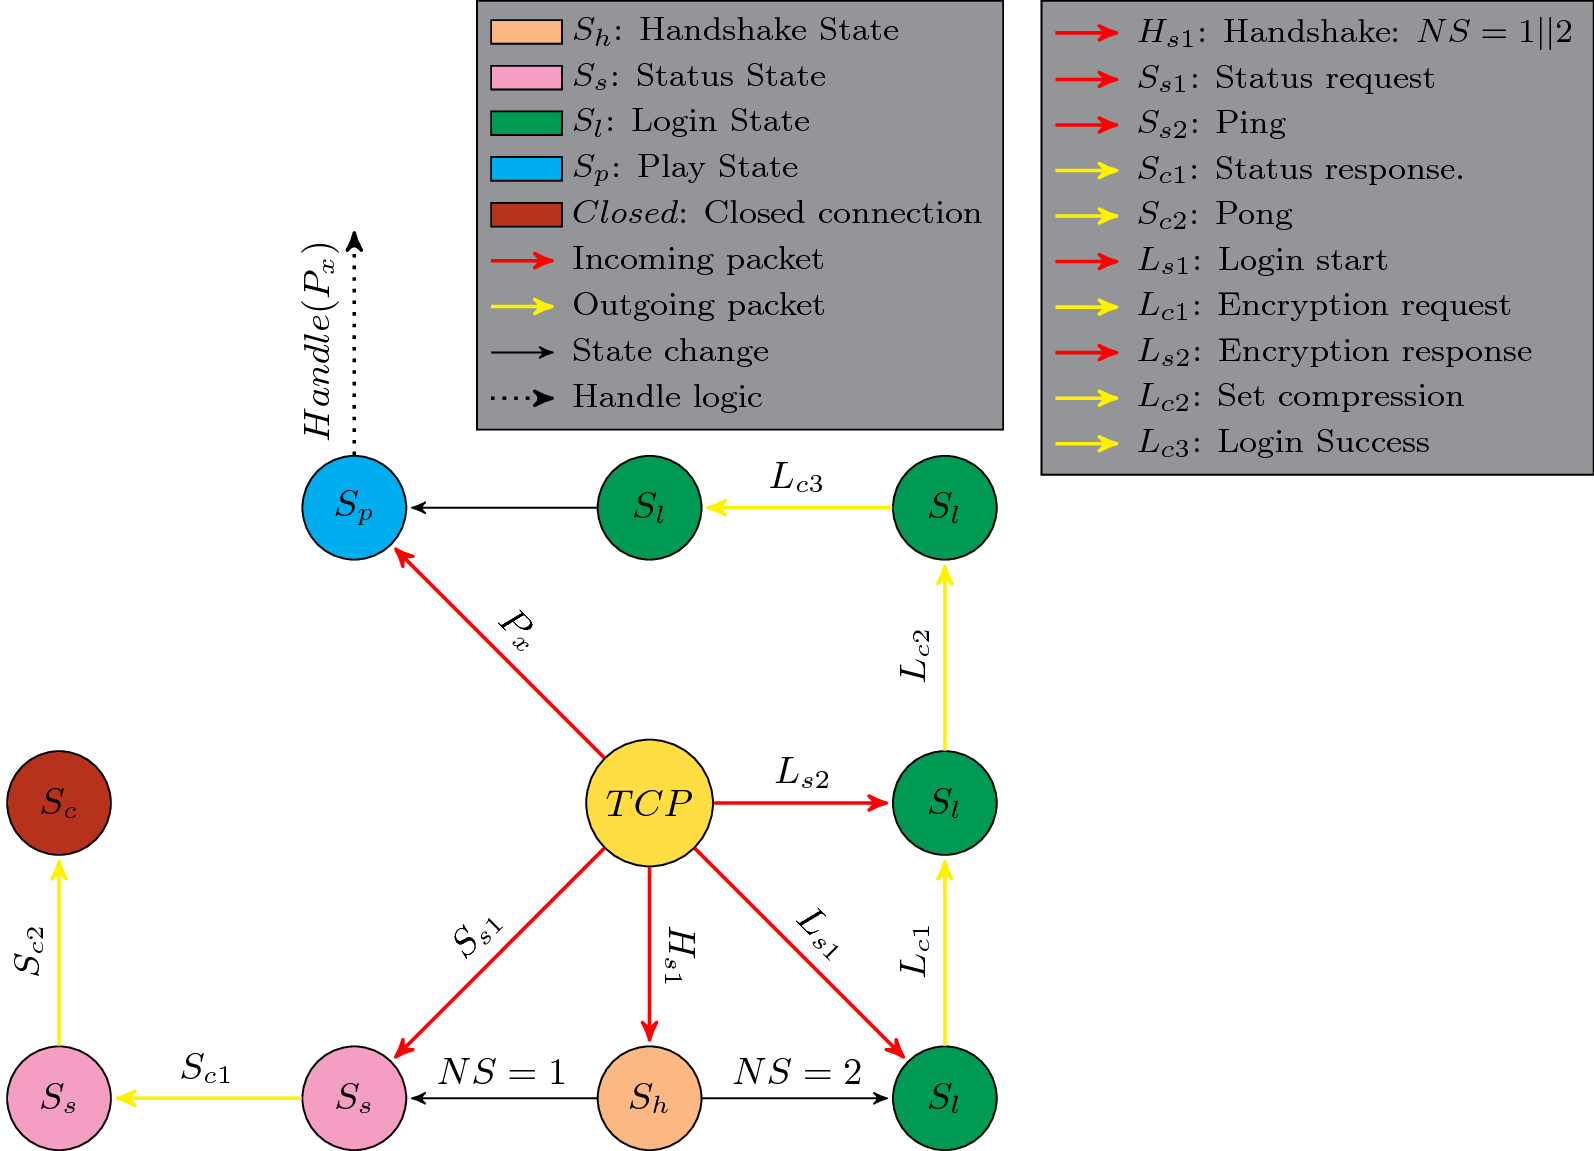 hight resolution of fsm showing an example of how to handle new connections